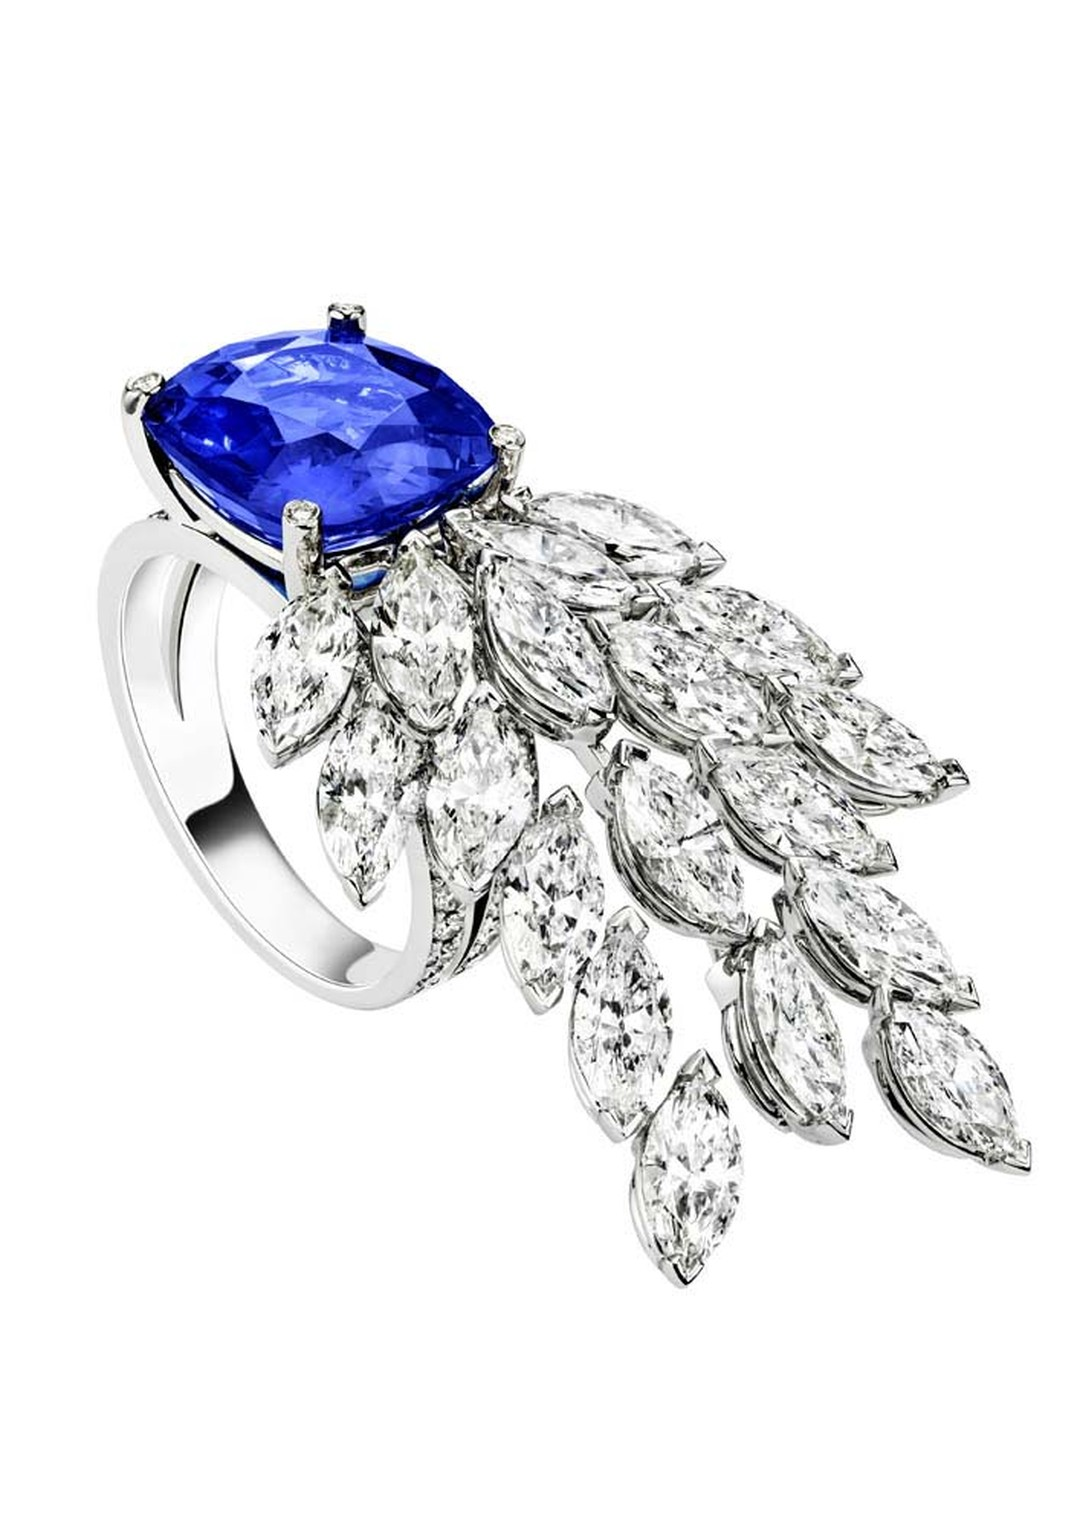 Extremely Piaget collection ring in white gold set with a cushion-cut blue sapphire, marquise-cut diamonds and brilliant-cut diamonds.